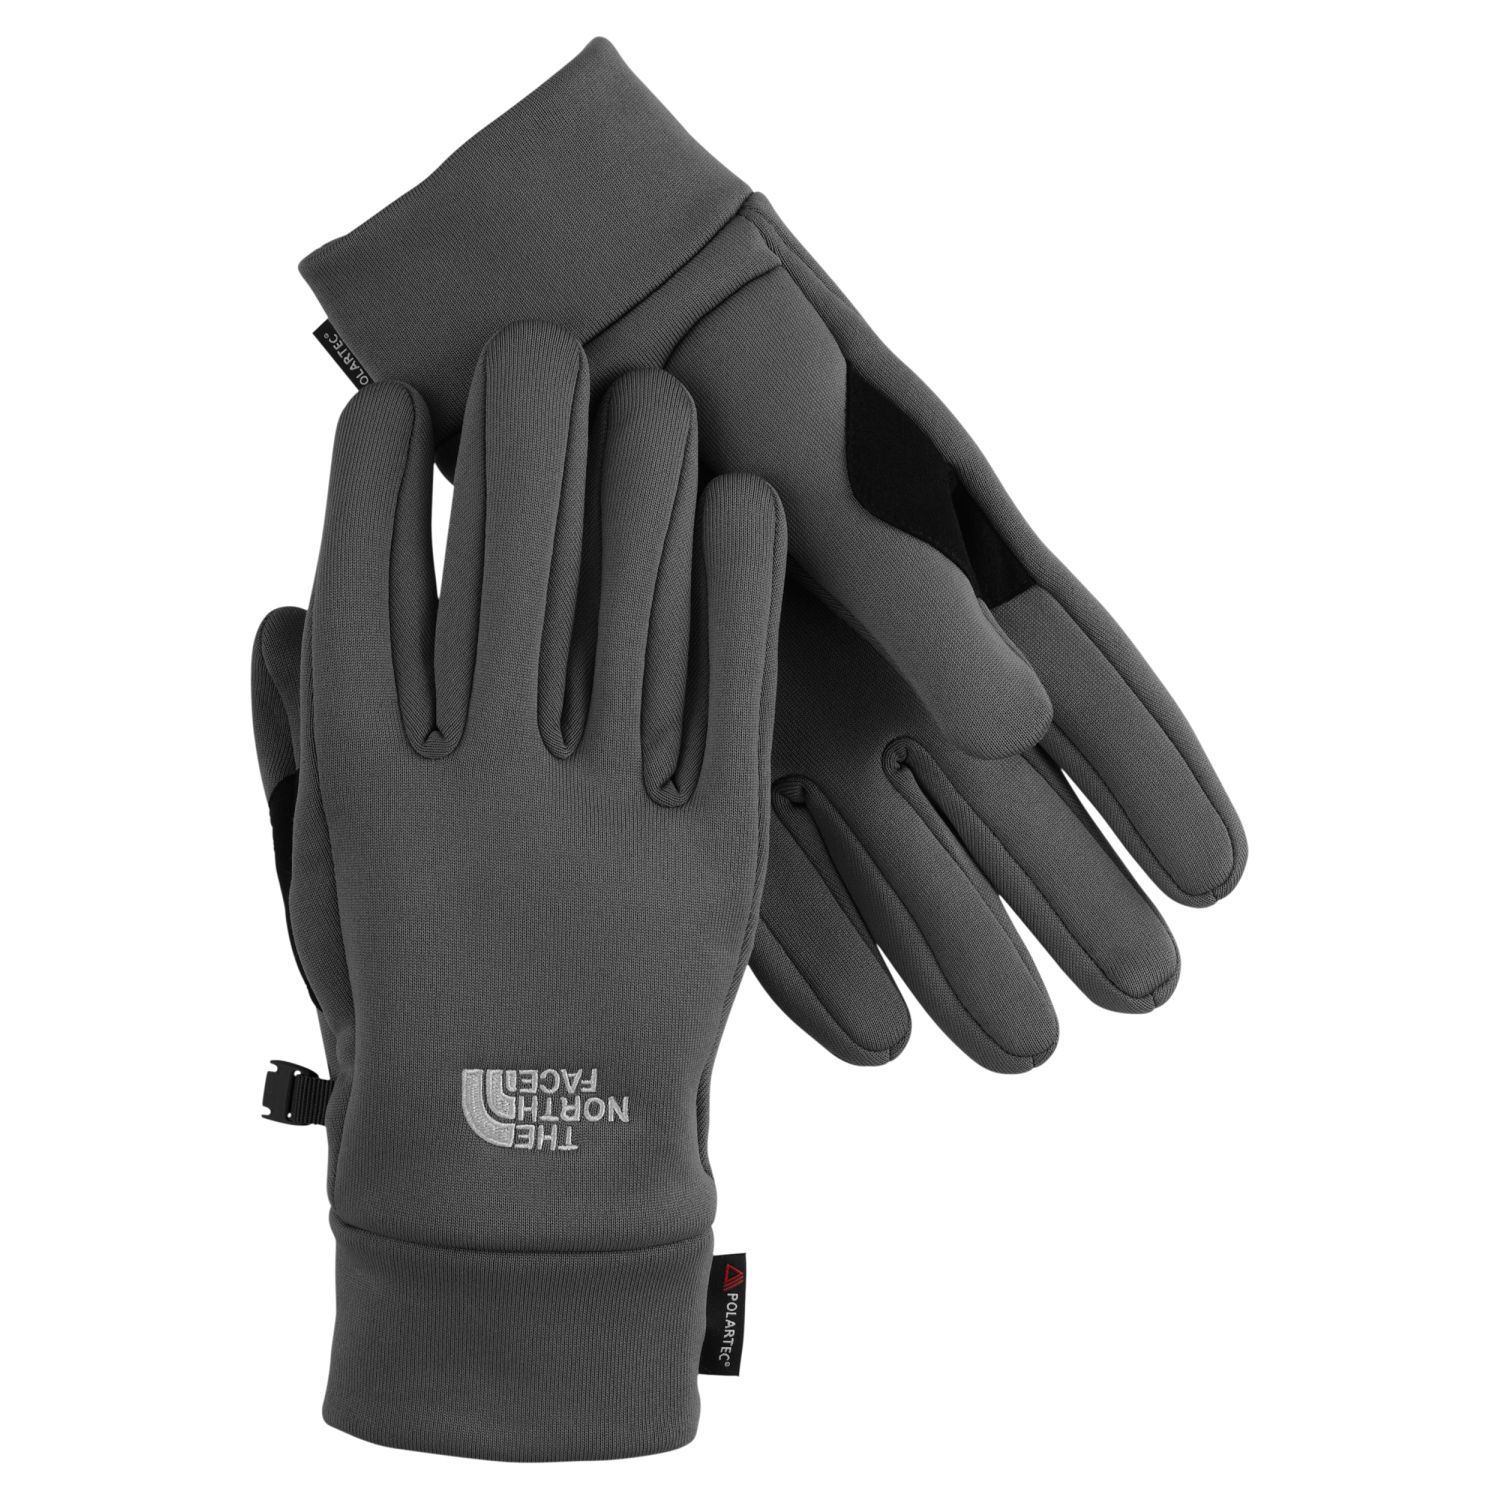 42c8d8961 The North Face Power Stretch Glove - Men's